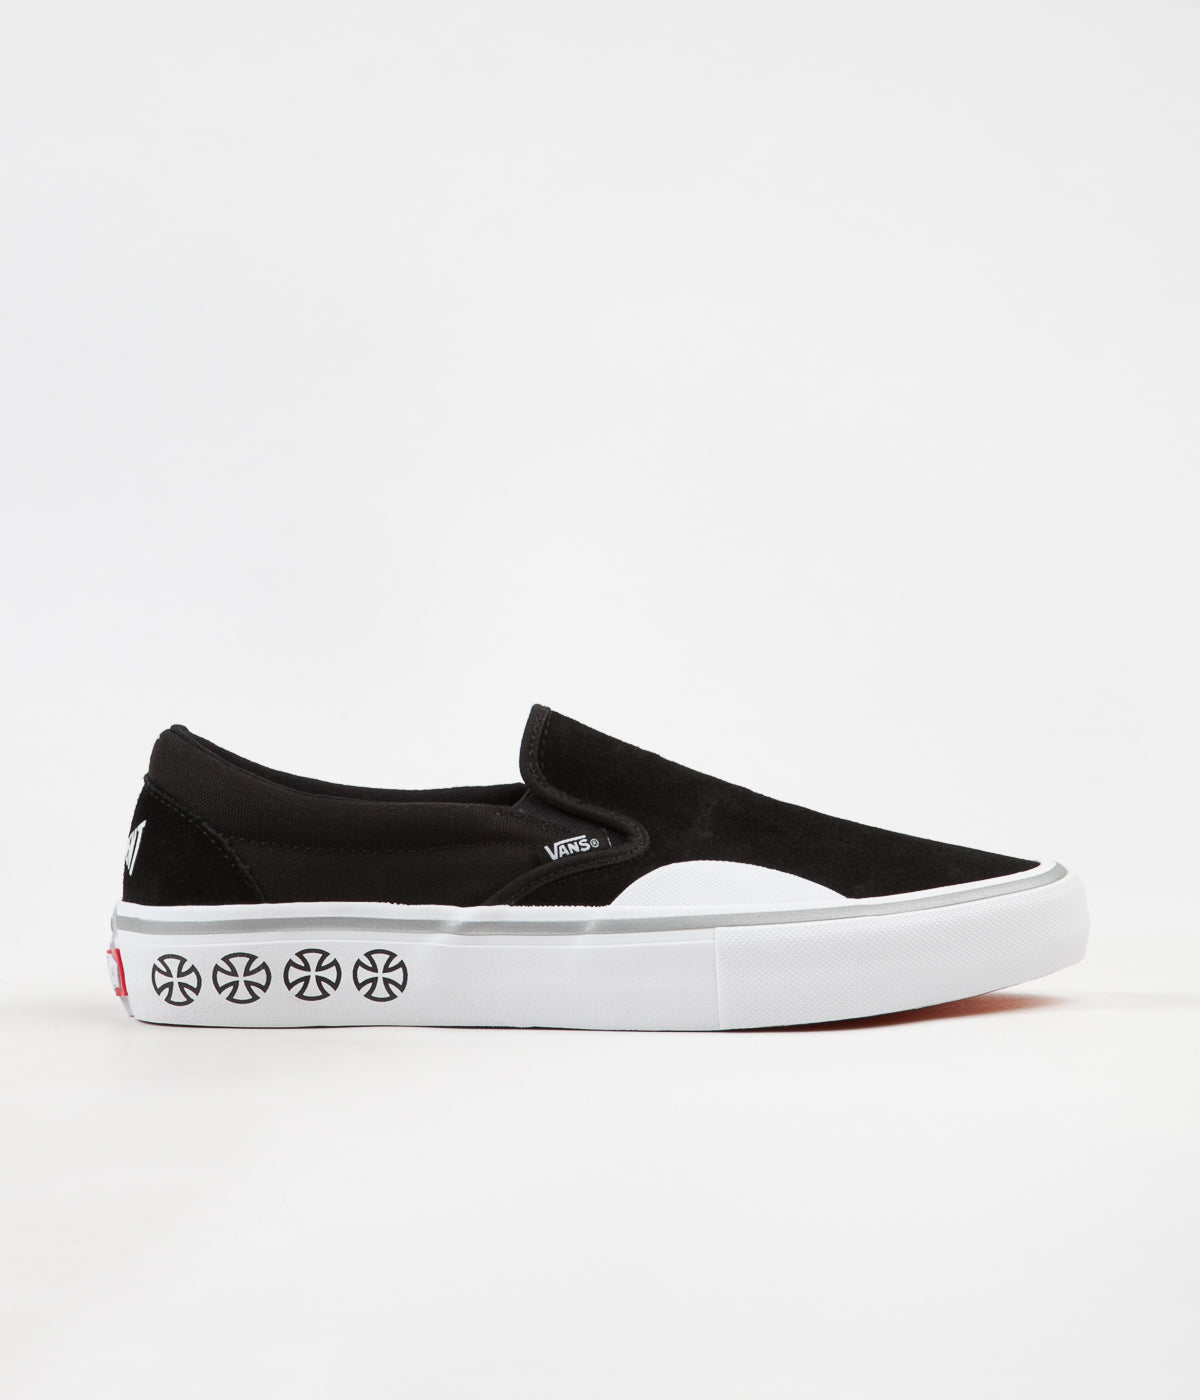 292cb533f787f8 ... Vans x Independent Slip On Pro Shoes - Black   White ...